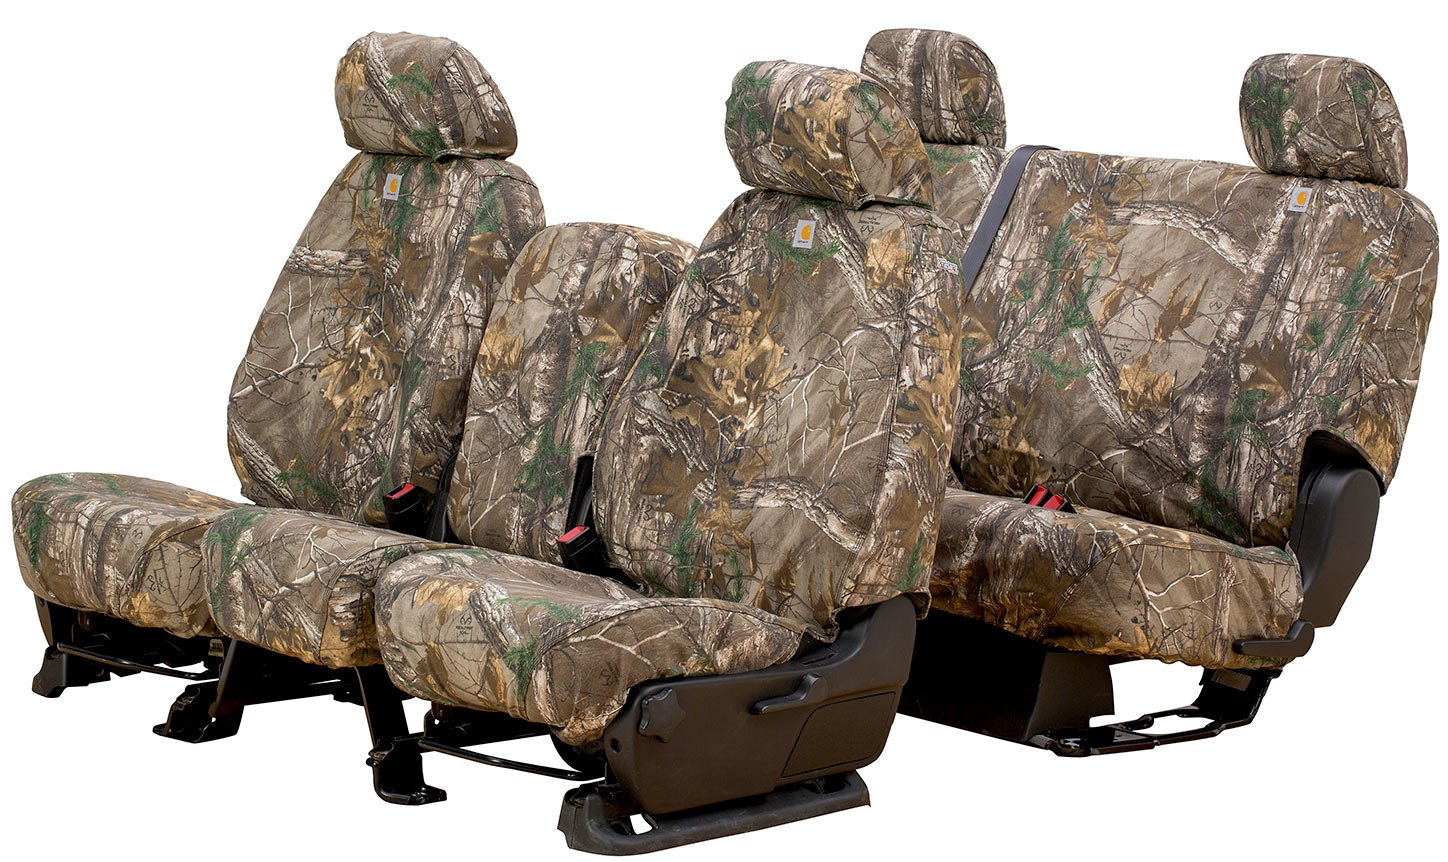 Carhartt Realtree Camo Seat Covers Free Shipping